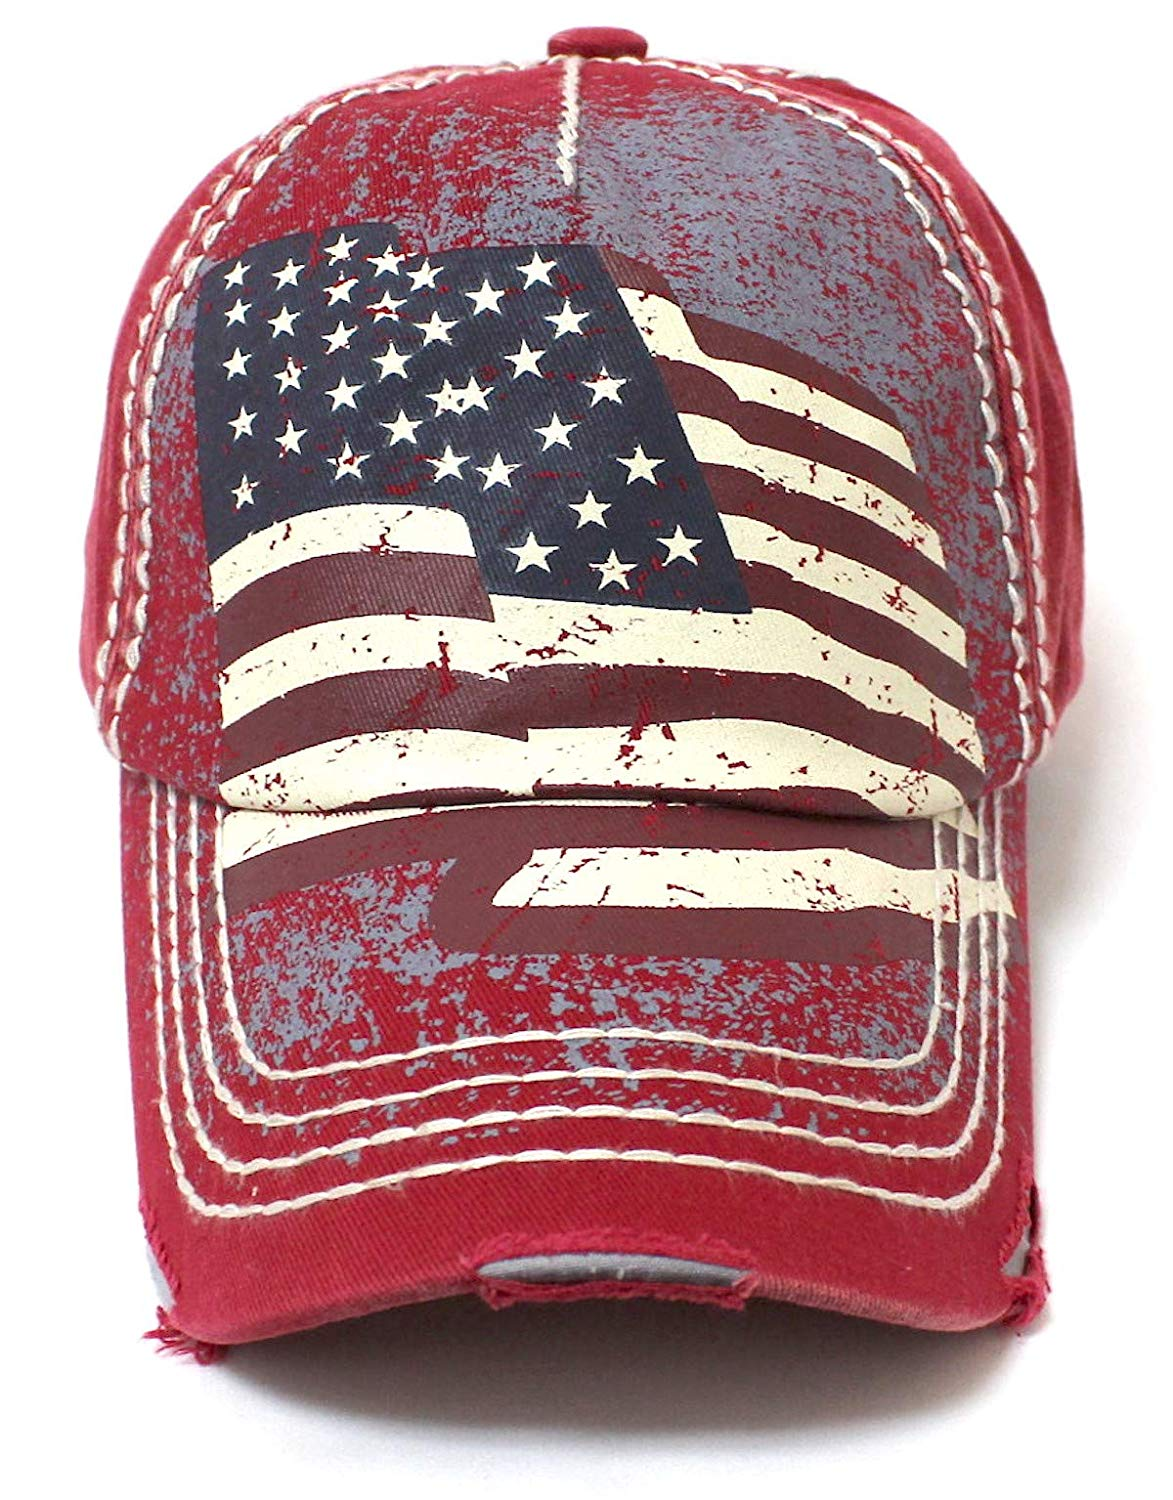 New! American Red Folding USA Flag Vintage Ballcap - Caps 'N Vintage